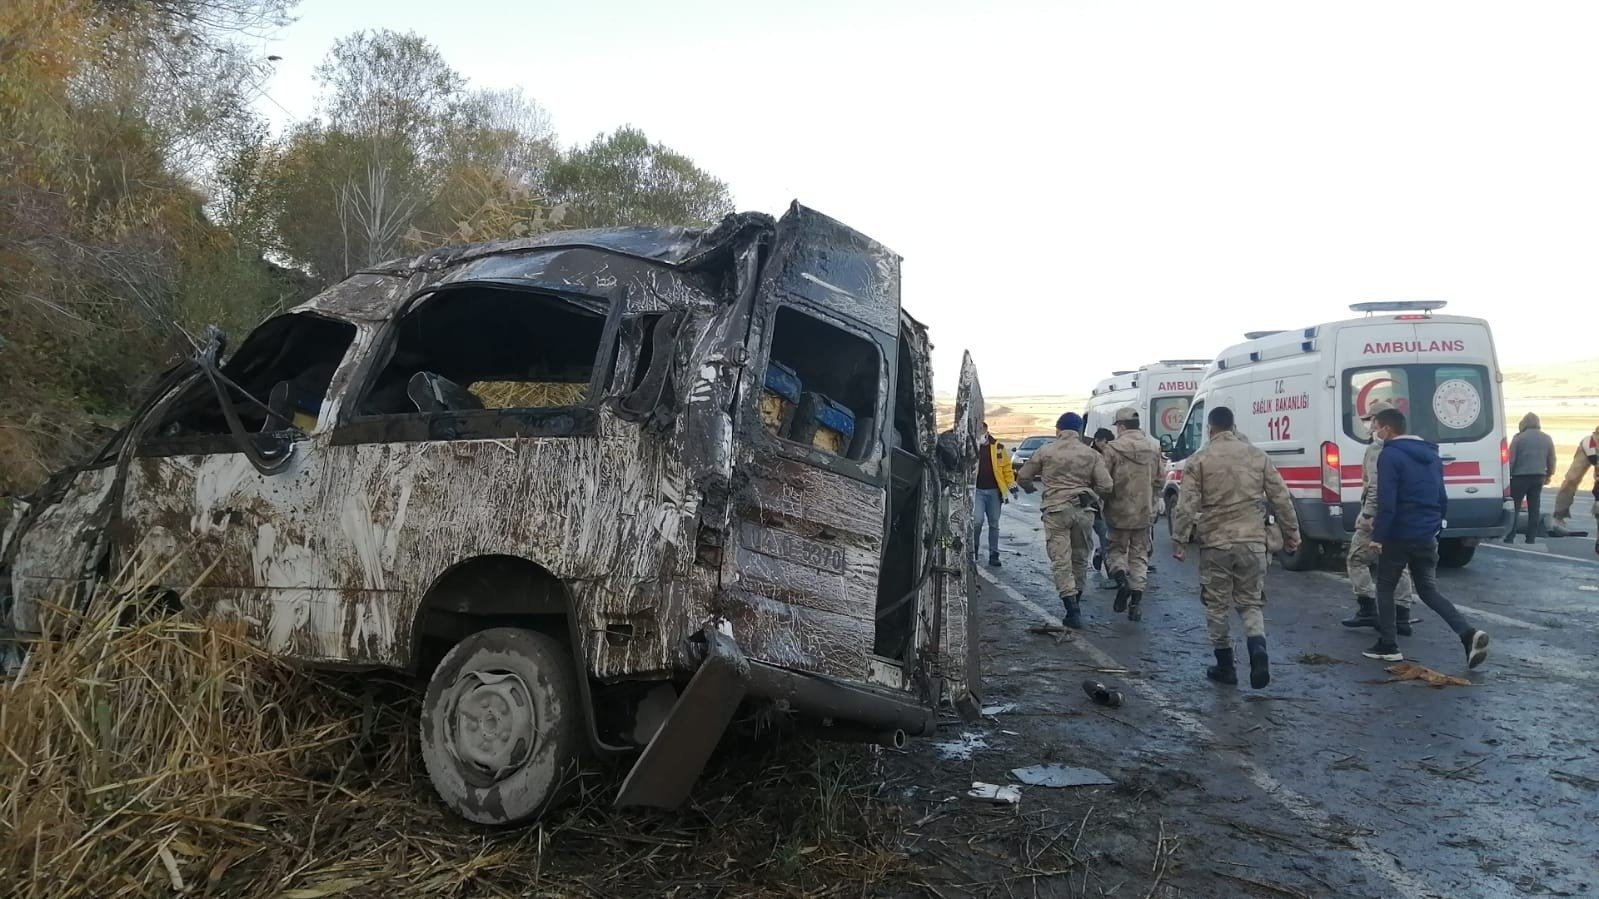 A view of the crashed minibus, in Van province, eastern Turkey, Nov. 13, 2020. (IHA Photo)